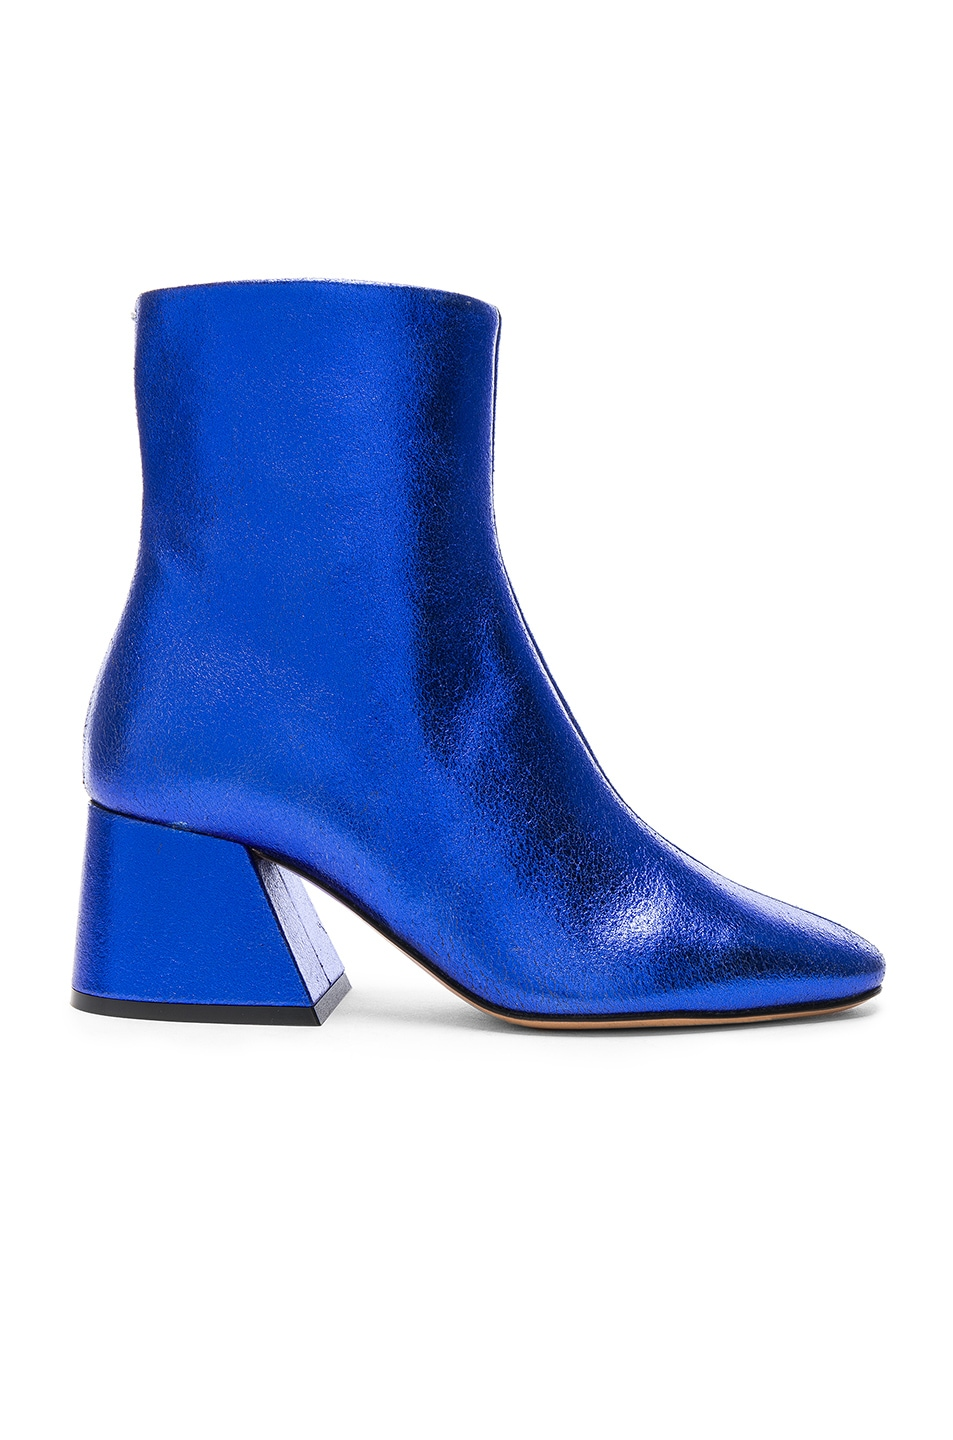 Image 1 of Maison Margiela Laminated Leather Chunky Heel Boots in Cobalt